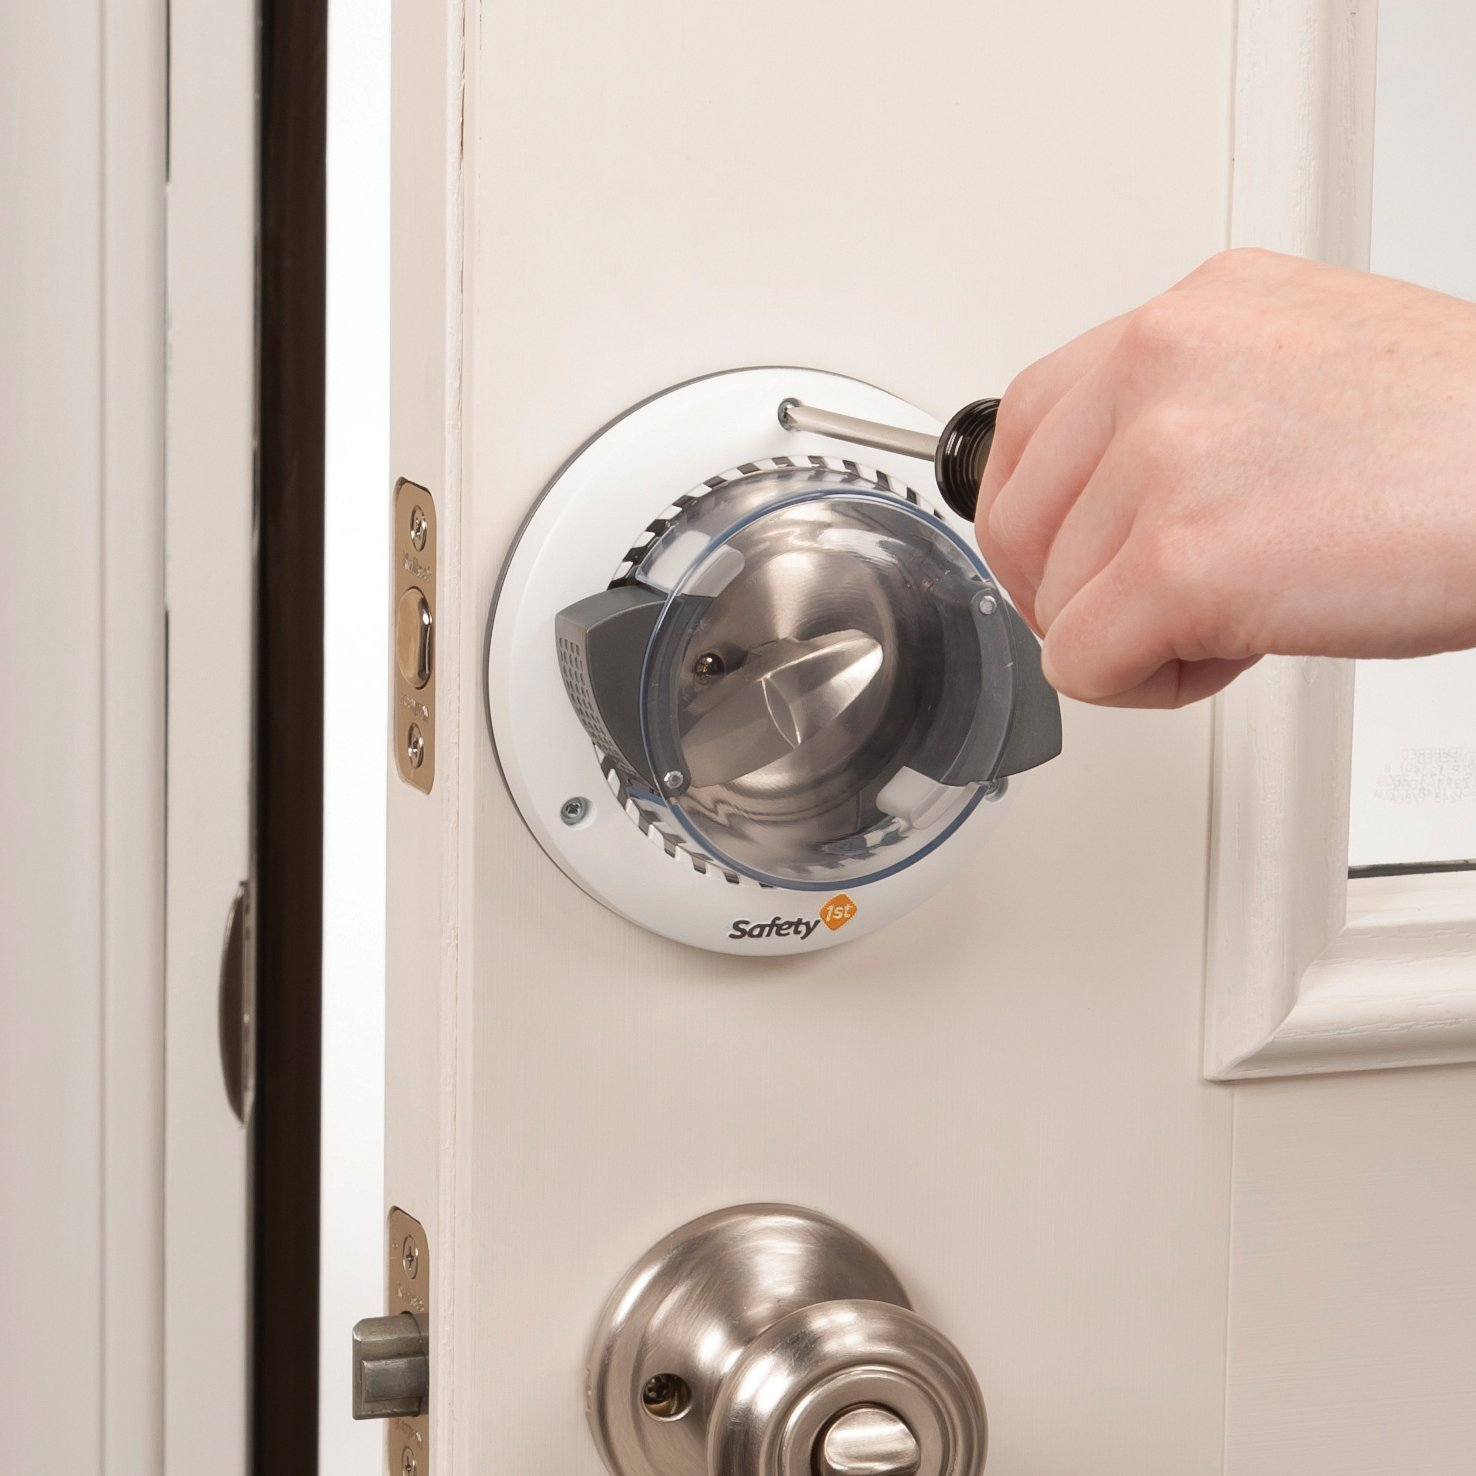 Safety 1st Secure Mount Deadbolt Lock - 2 Count by Safety 1st (Image #3)